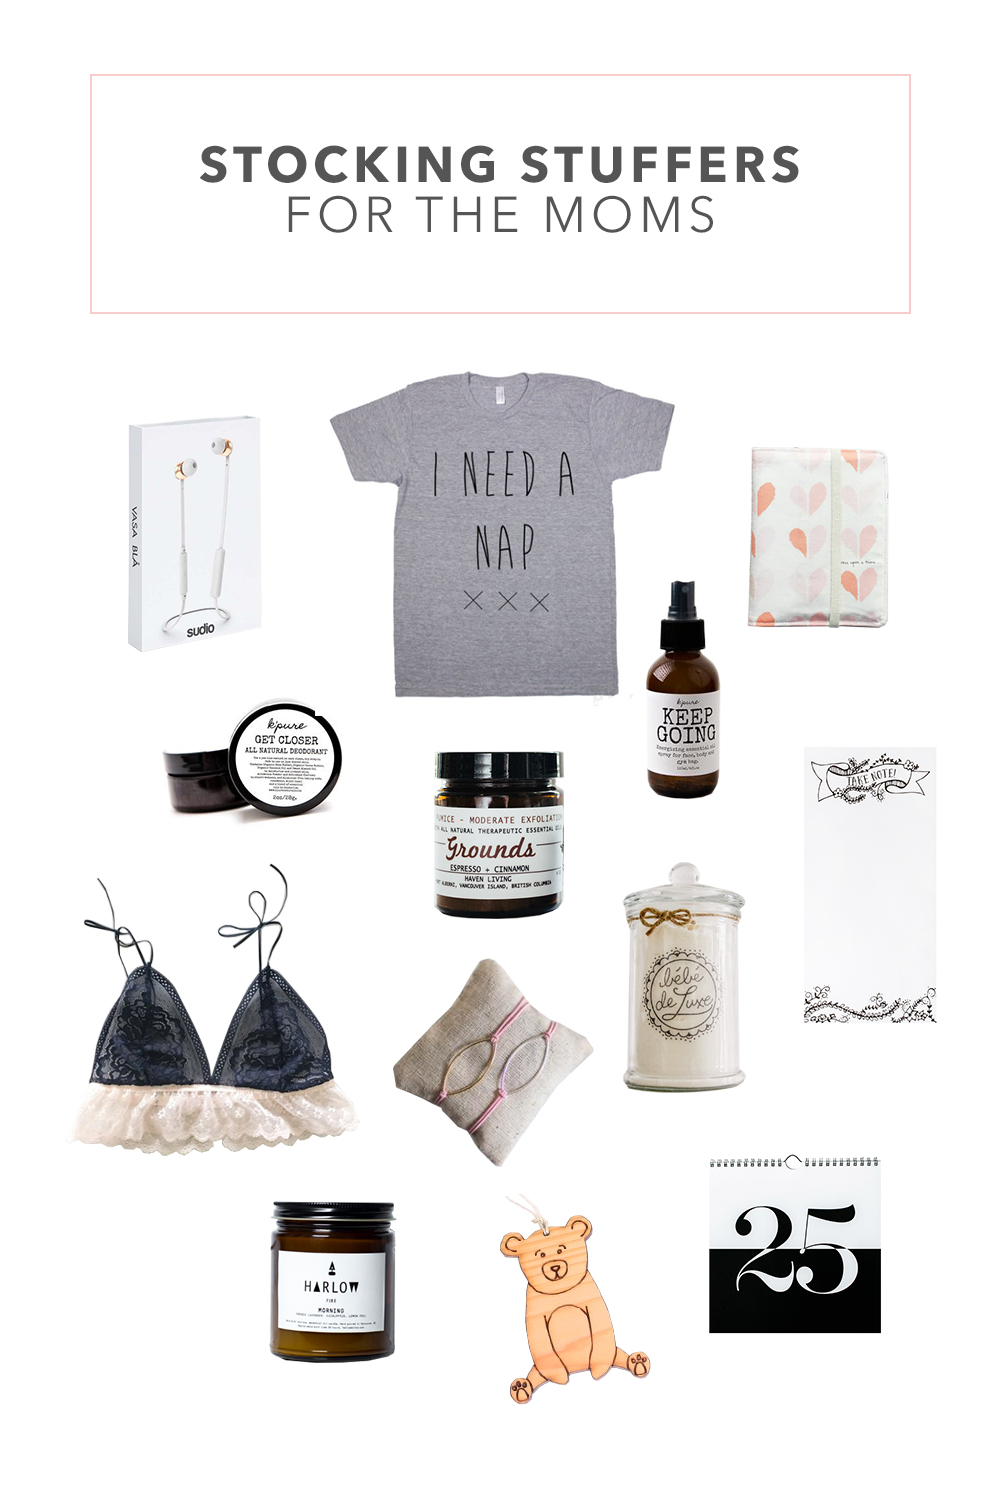 Stocking Stuffer Ideas for Moms in our Lives | Female Stocking Stuffers | Gifts for Ladies